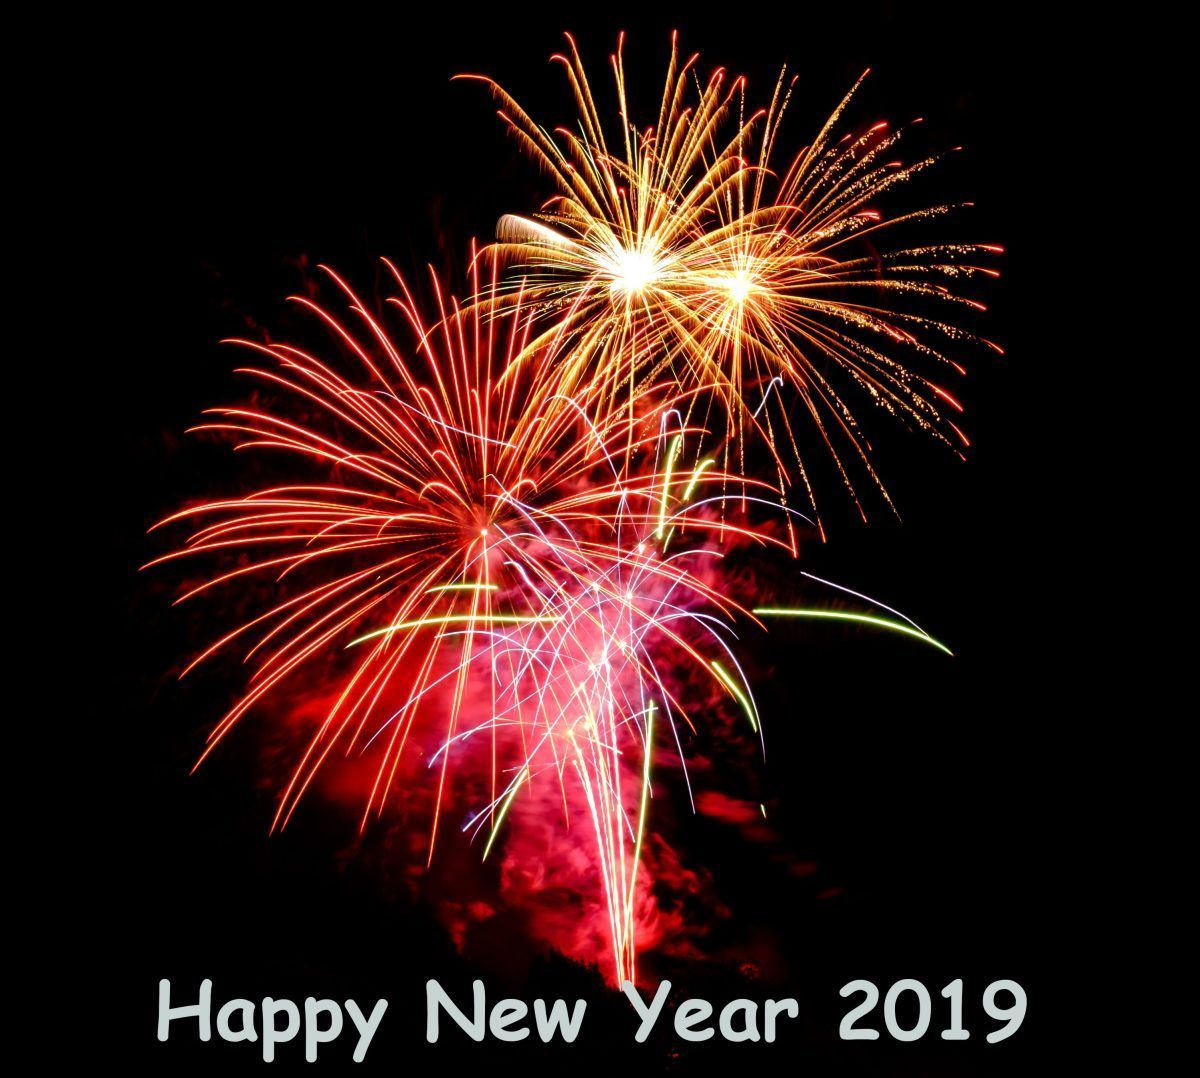 Happy New Year 2019 - Jaipur stuff and news